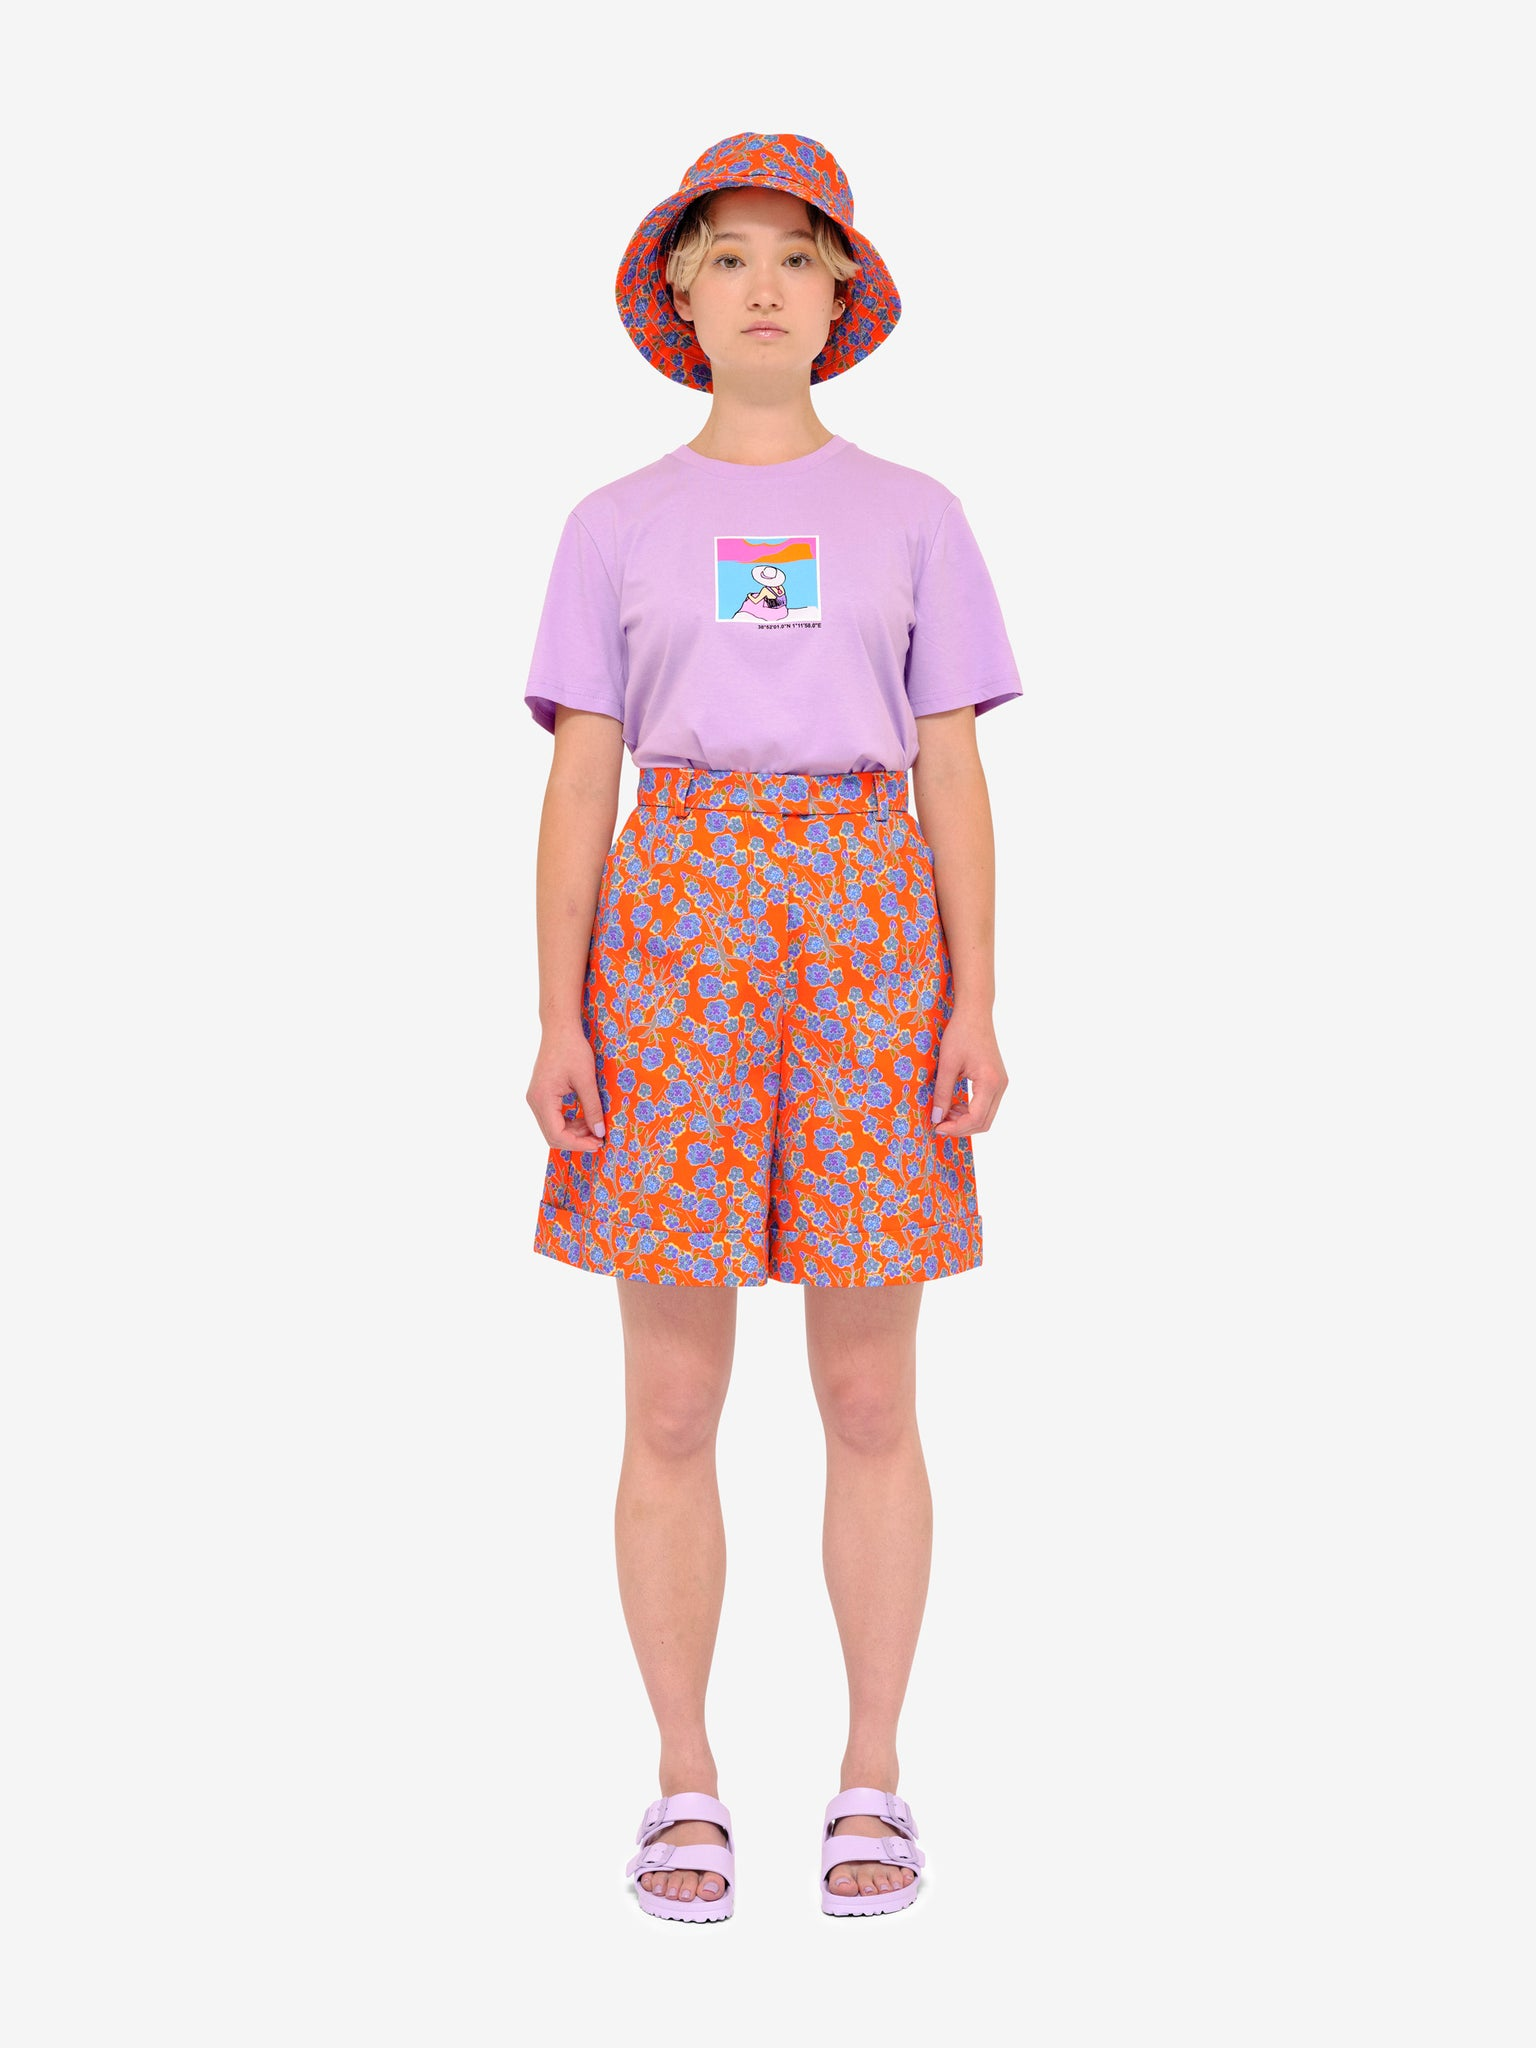 Model wearing Crimson Rose cotton drill culottes and bucket hat with orange and blue floral print, lilac Es Vedrà T-shirt and lilac sandals. Photography Rowan Corr.